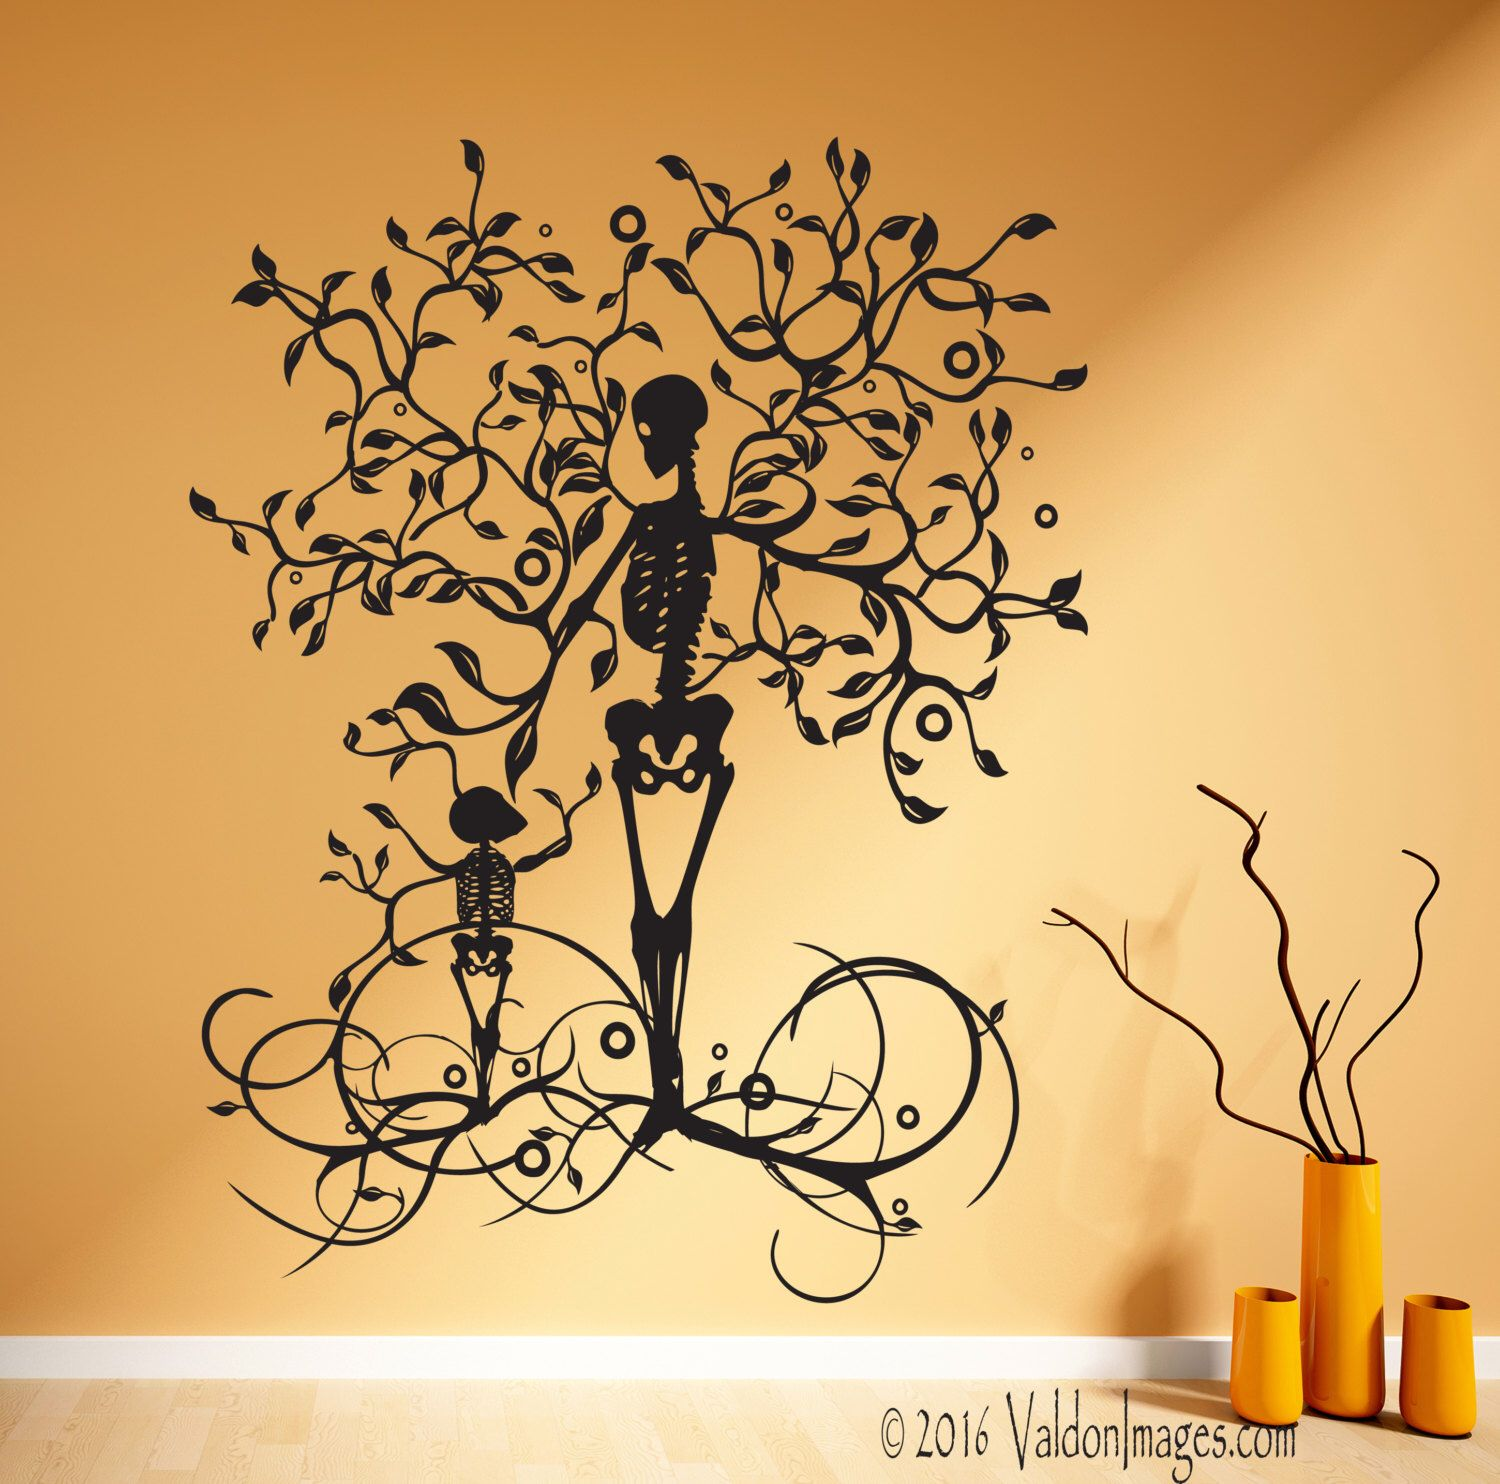 Skeleton wall decal, tree wall decal, tree of life wall decal, tree ...